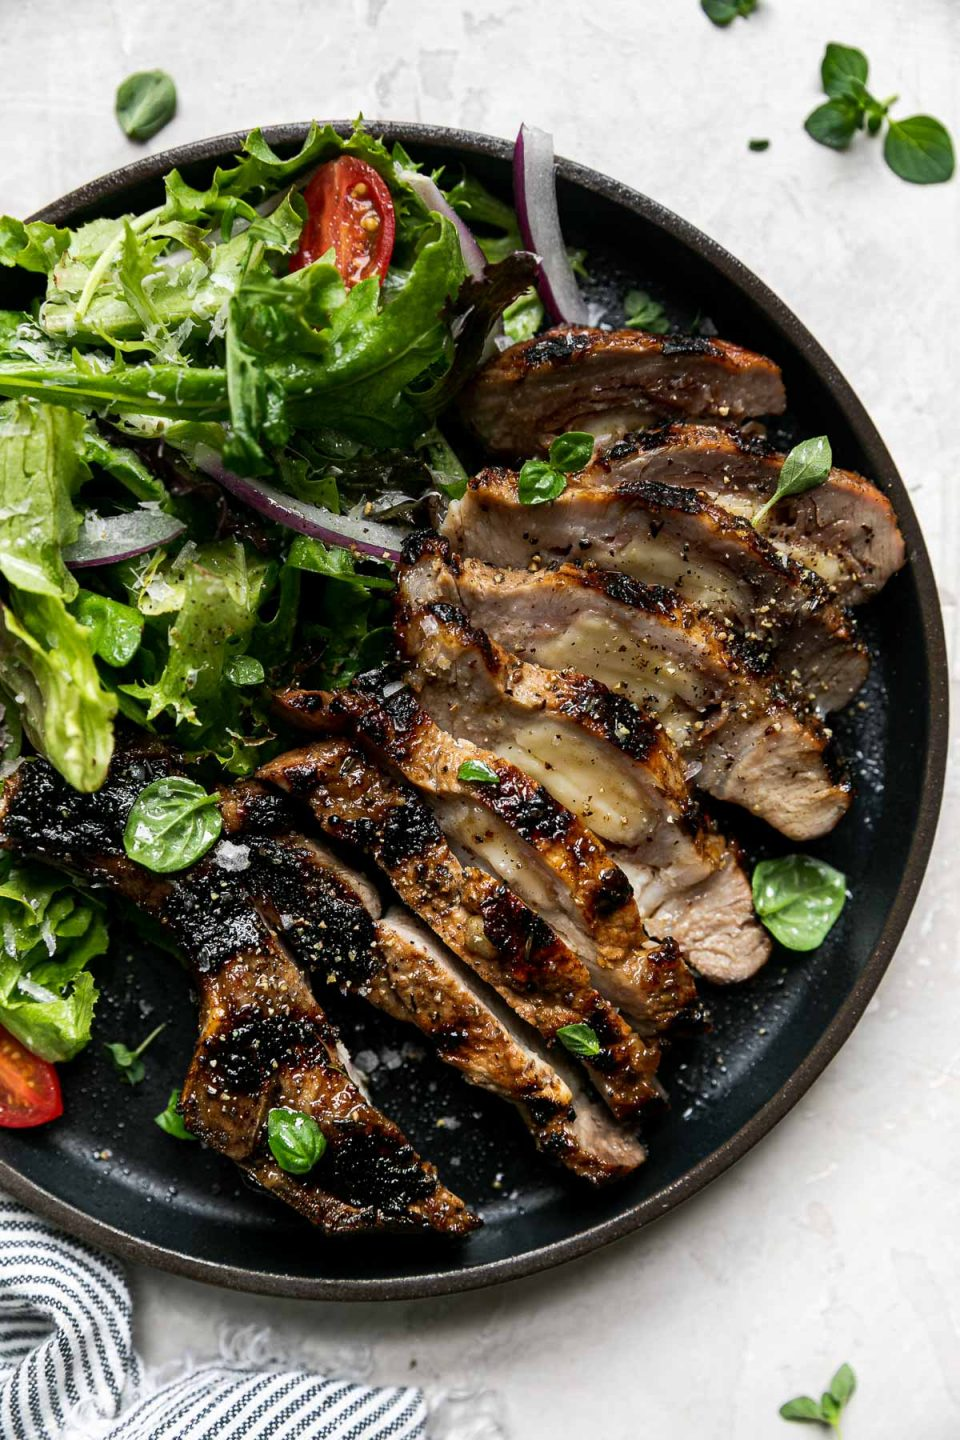 Grilled stuffed pork chop on a black plate. The pork chop is sliced, revealing its cheese & prosciutto filling. It's plated with a fresh green salad with tomatoes & red onions. The plate sits atop a creamy cement surface with a few sprigs of fresh oregano & a striped linen napkin.